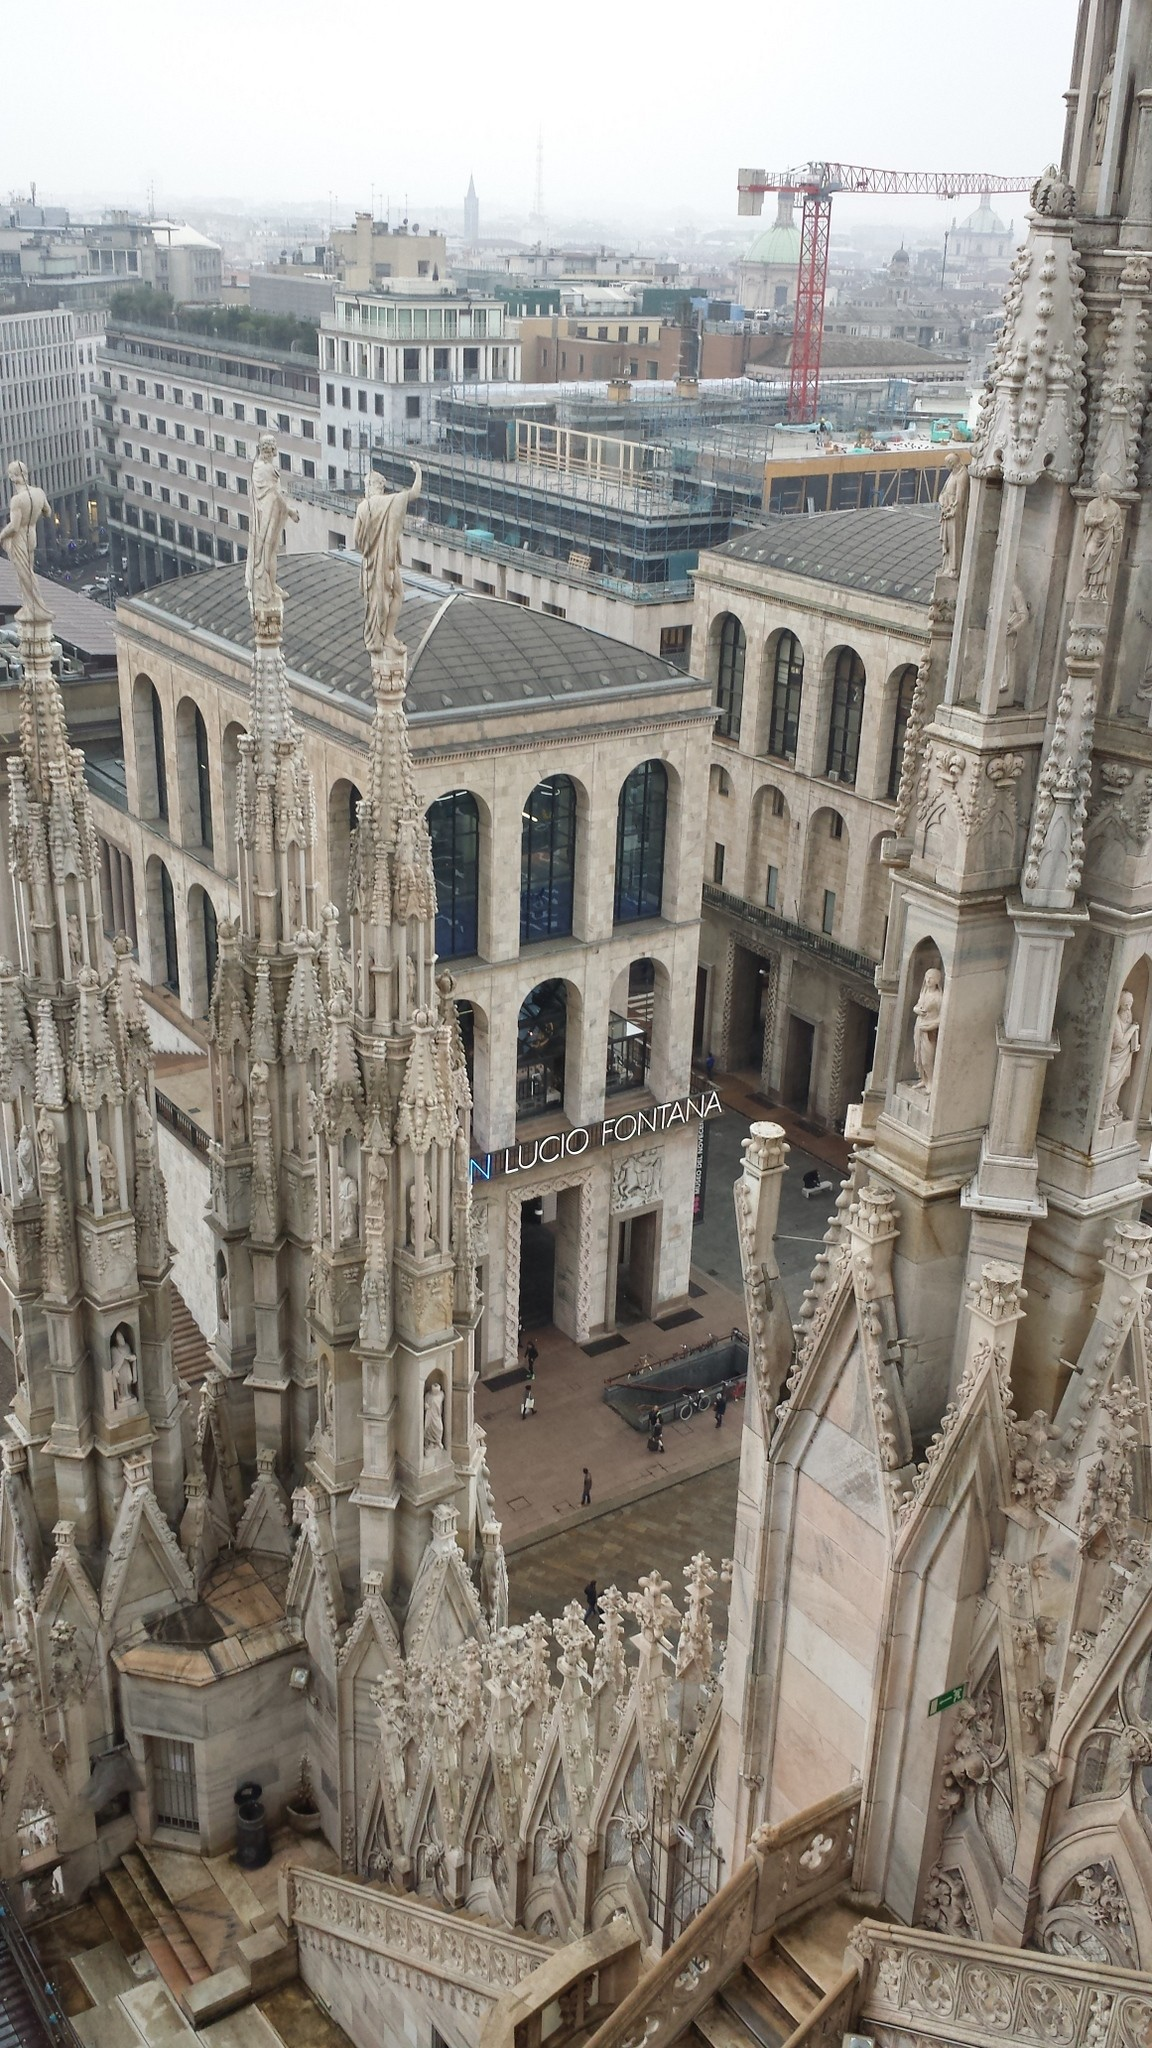 One of the prettiest cathedrals